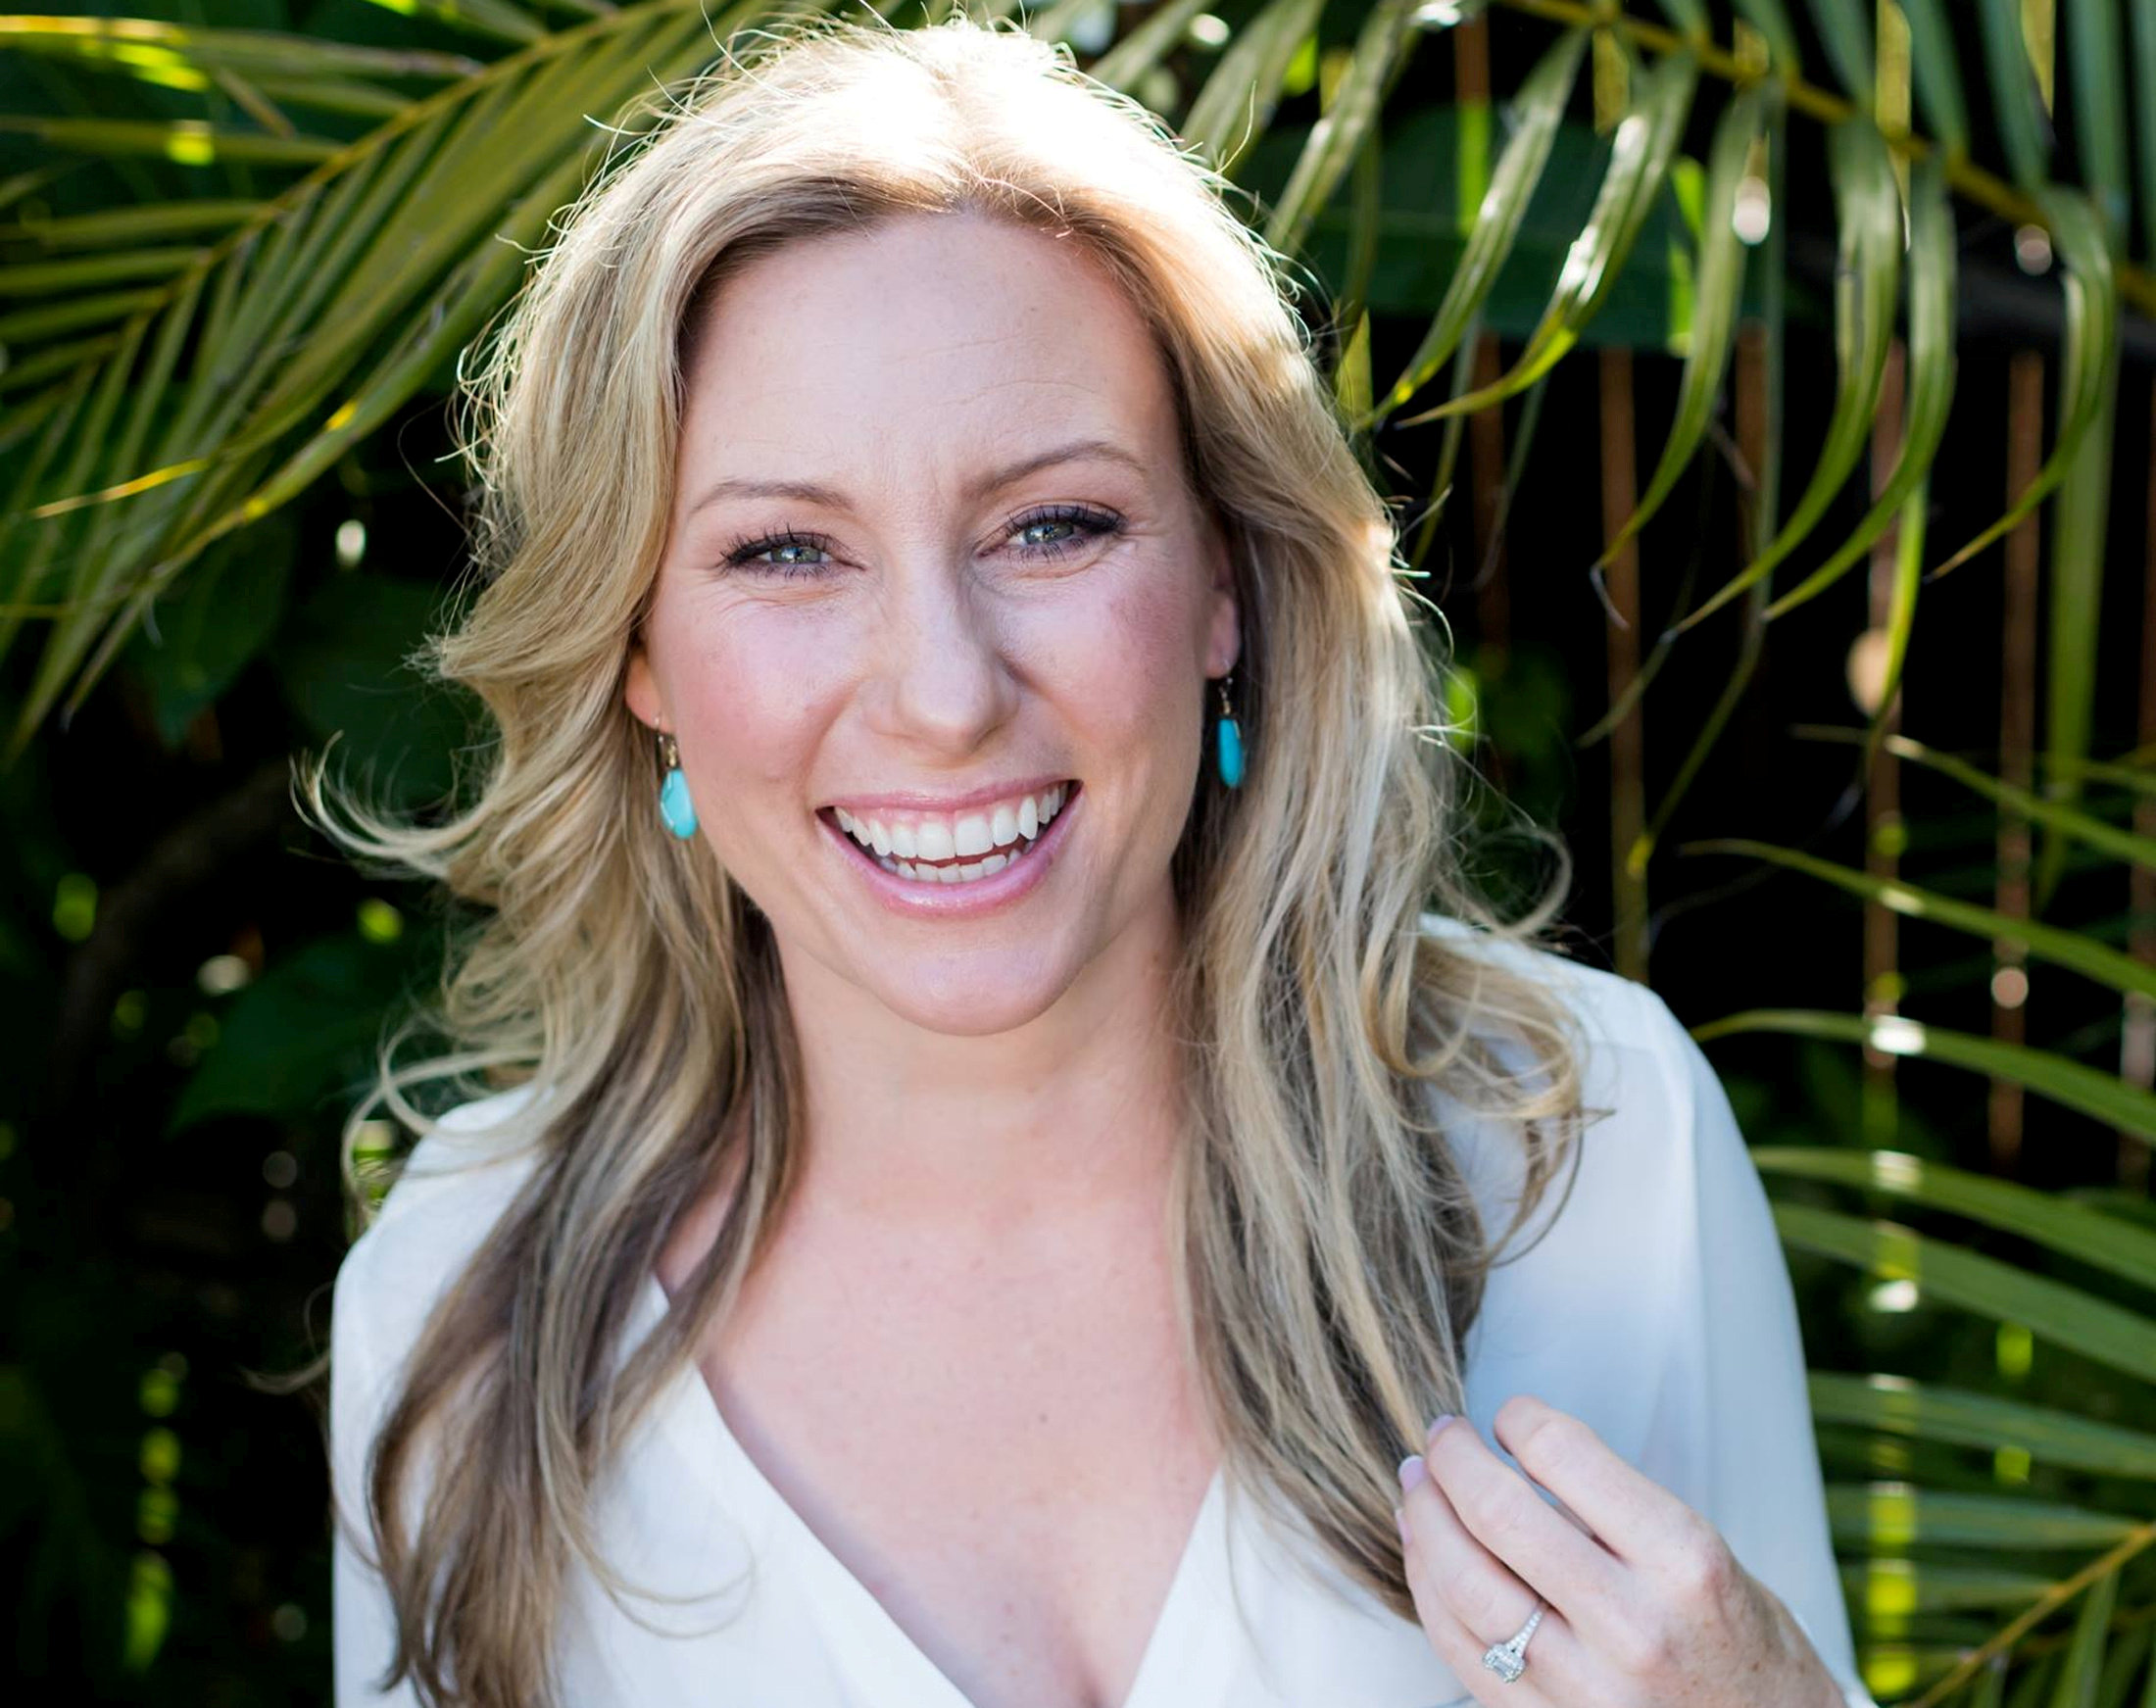 Justine Damond, also known as Justine Ruszczyk, from Sydney, is seen in this 2015 photo released by Stephen Govel Photography in New York, on July 17, 2017. — Reuters pic